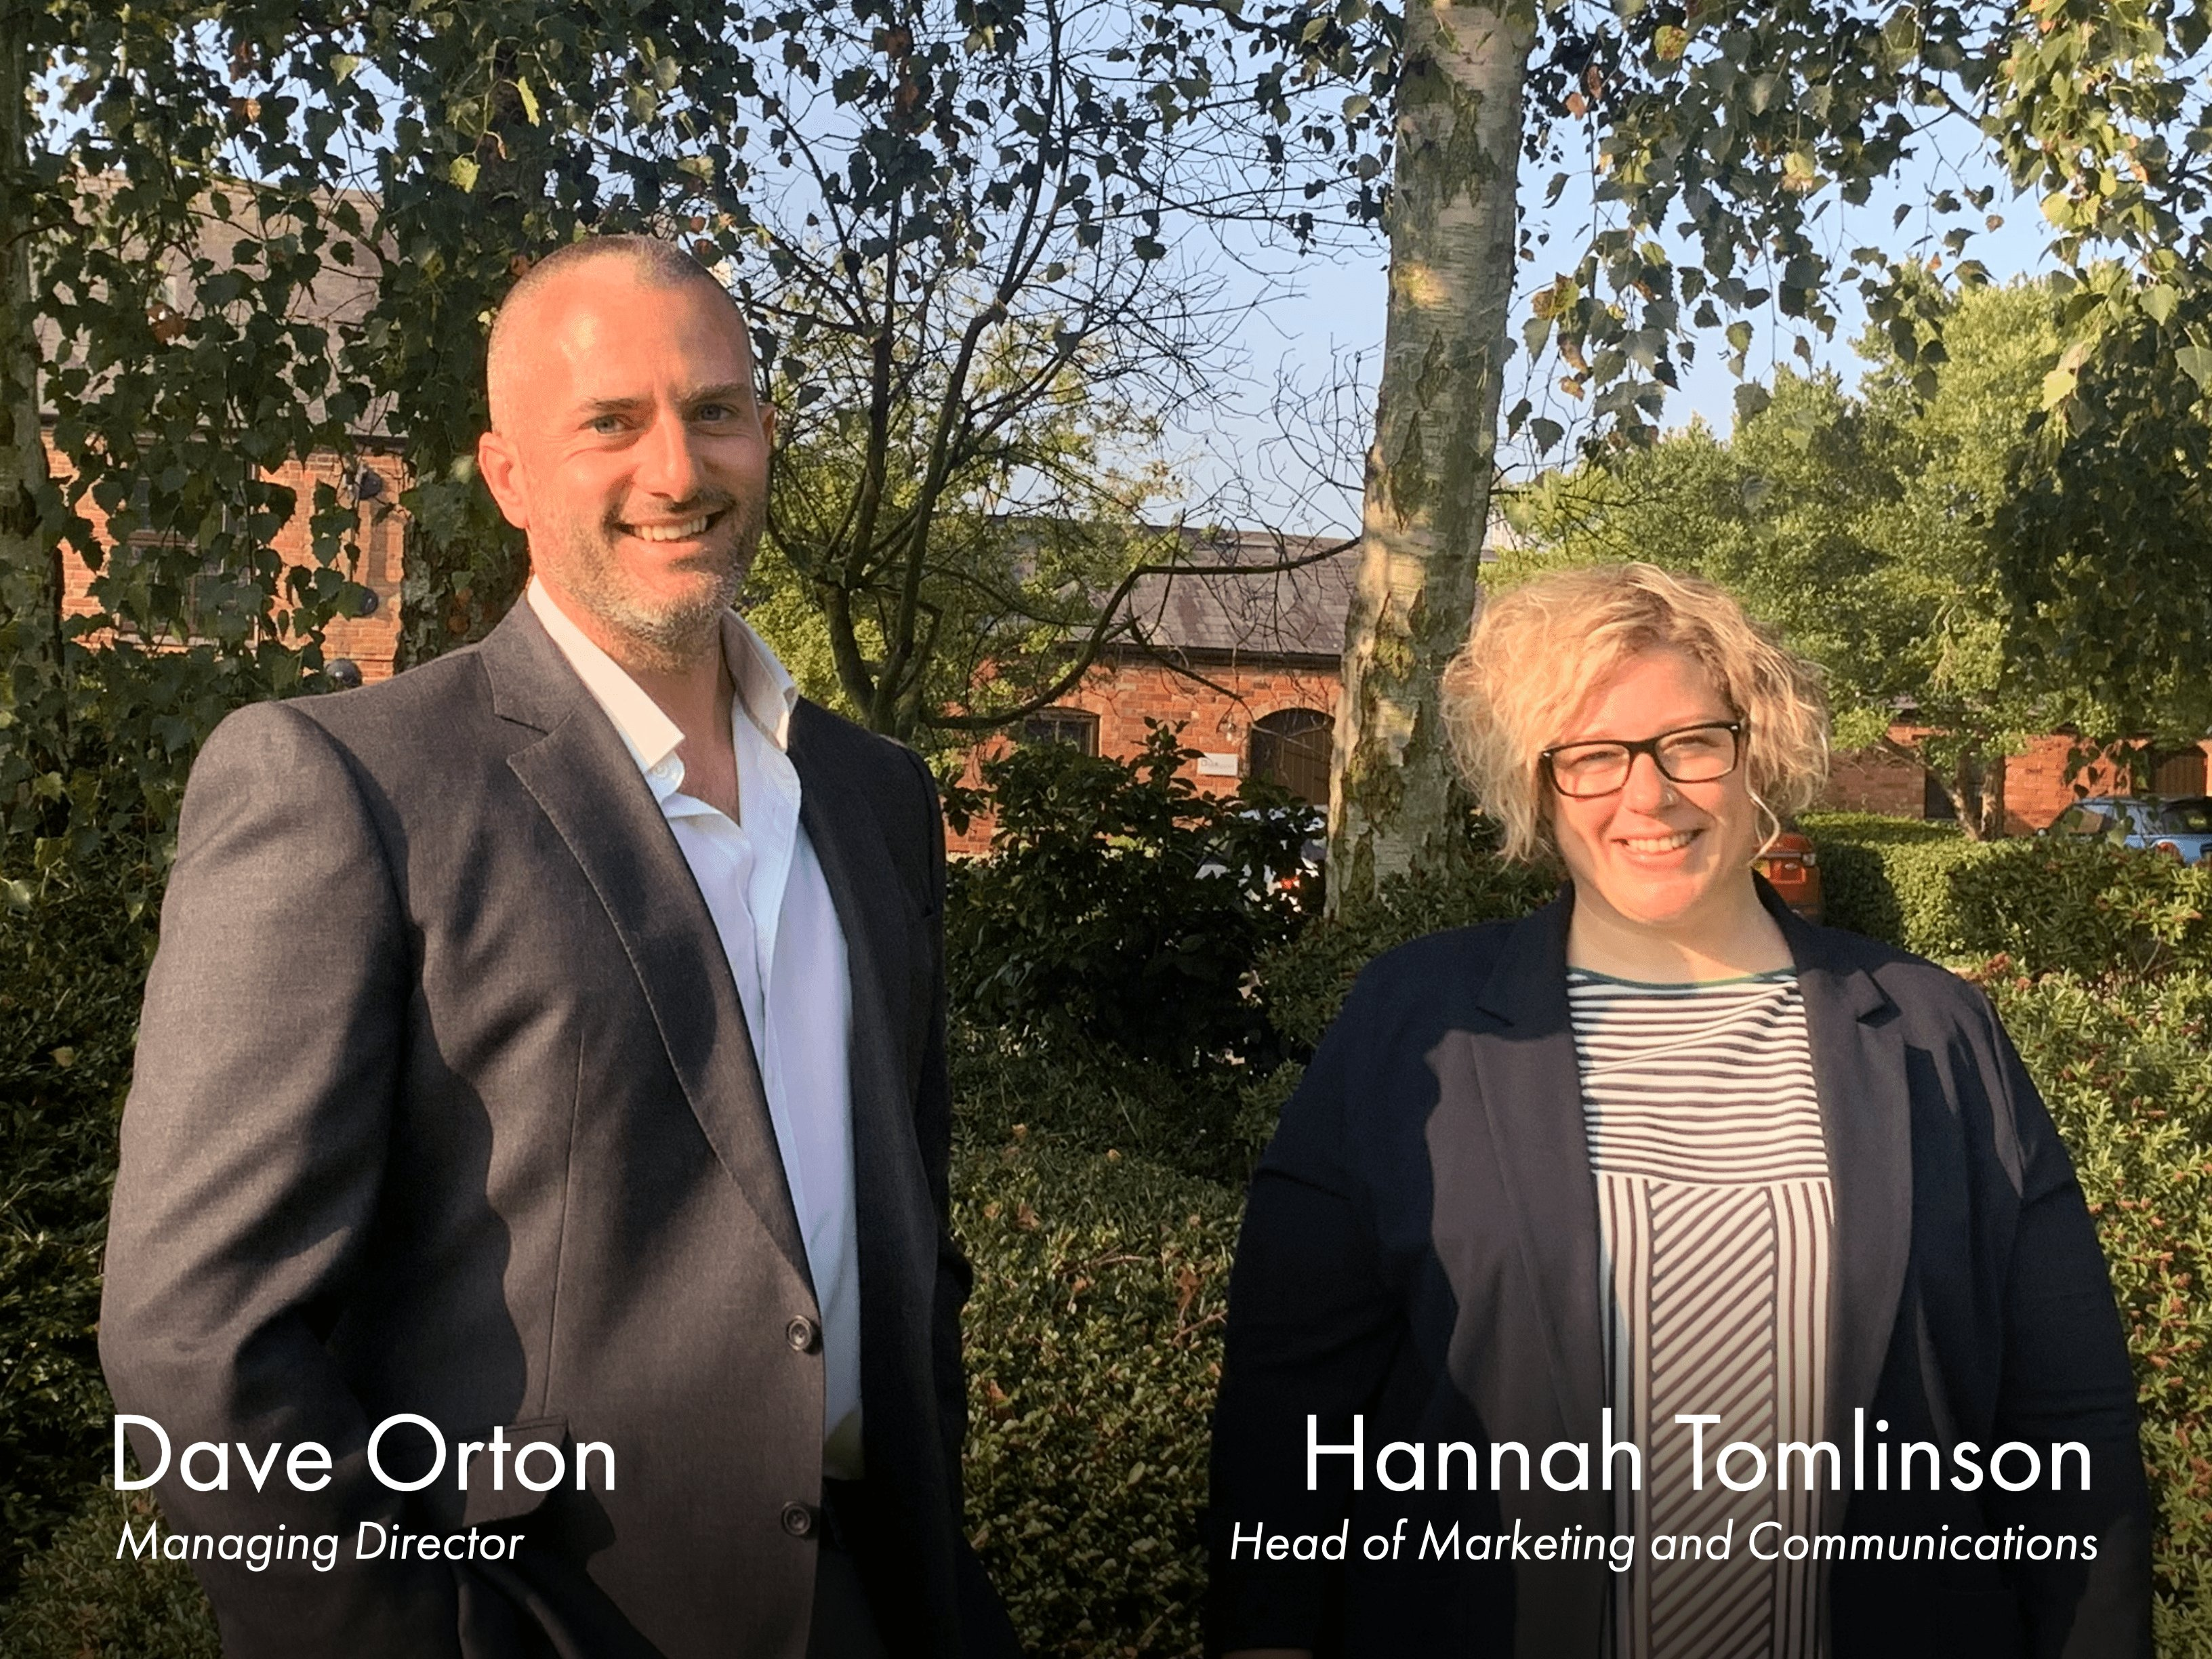 Local Marketing Support Service Appoints New Senior Management During Lockdown